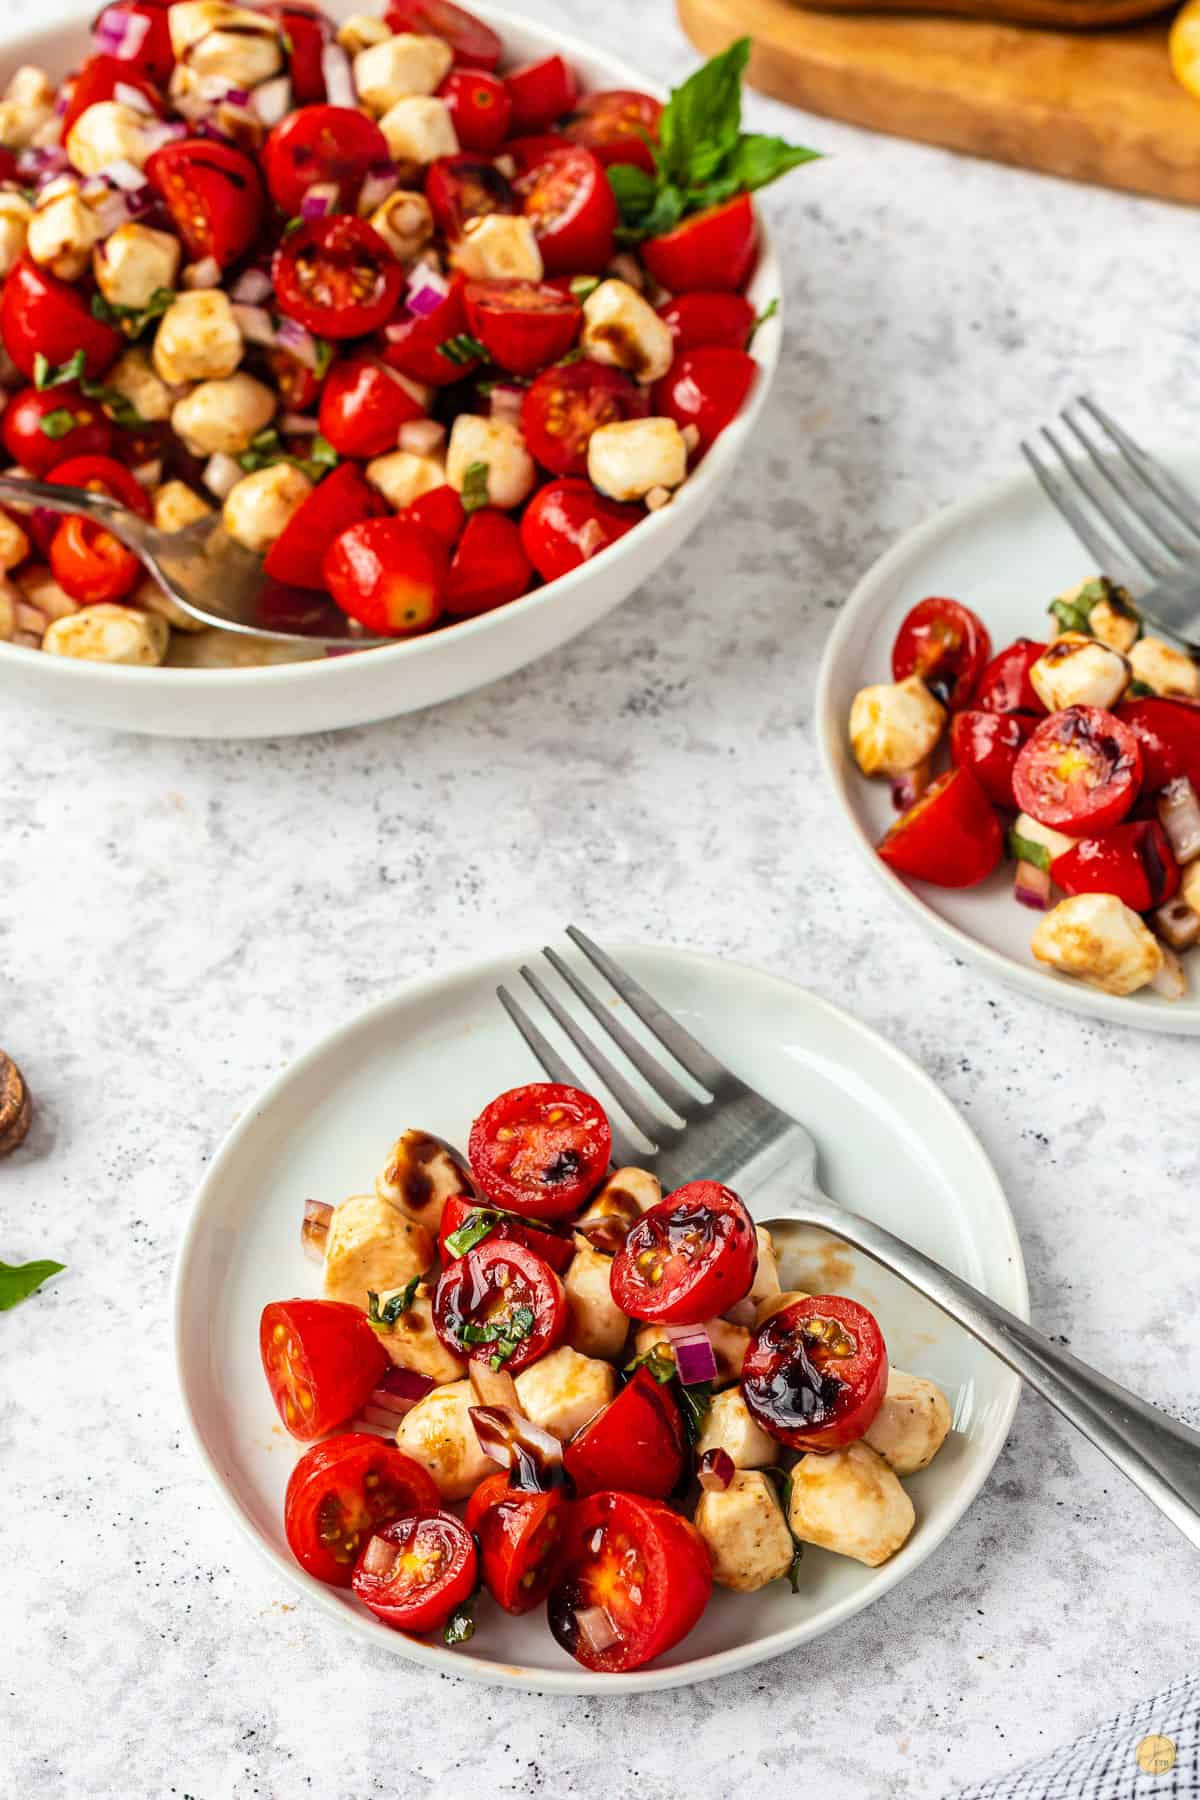 plate of tomato salad with fork